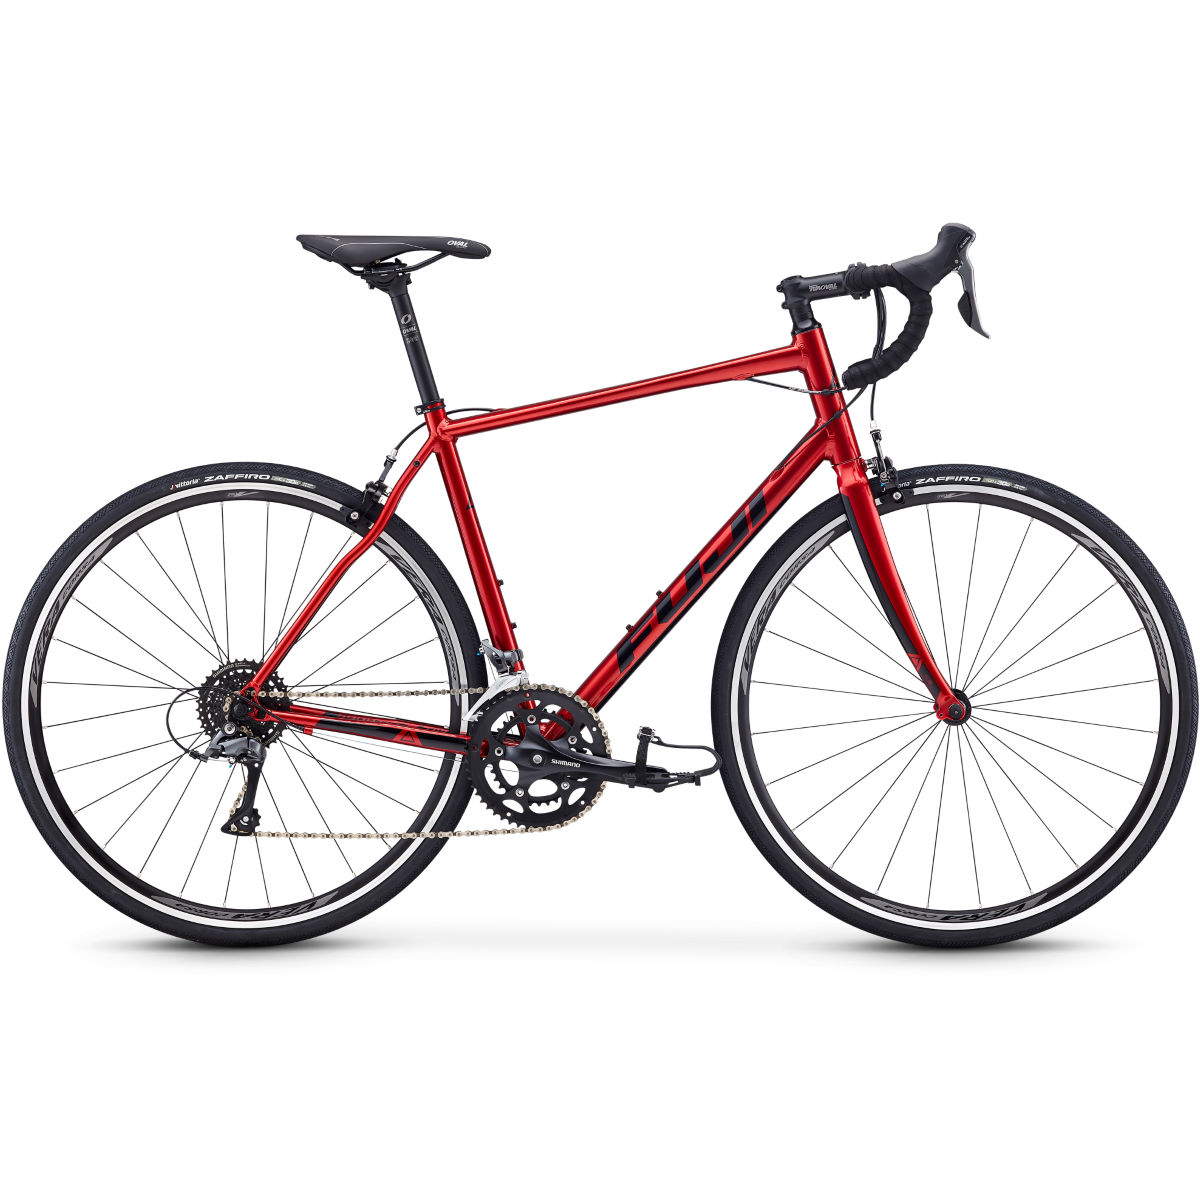 Fuji Sportif 2.3 Road Bike (2020) – 58cm Metallic Red | Road Bikes